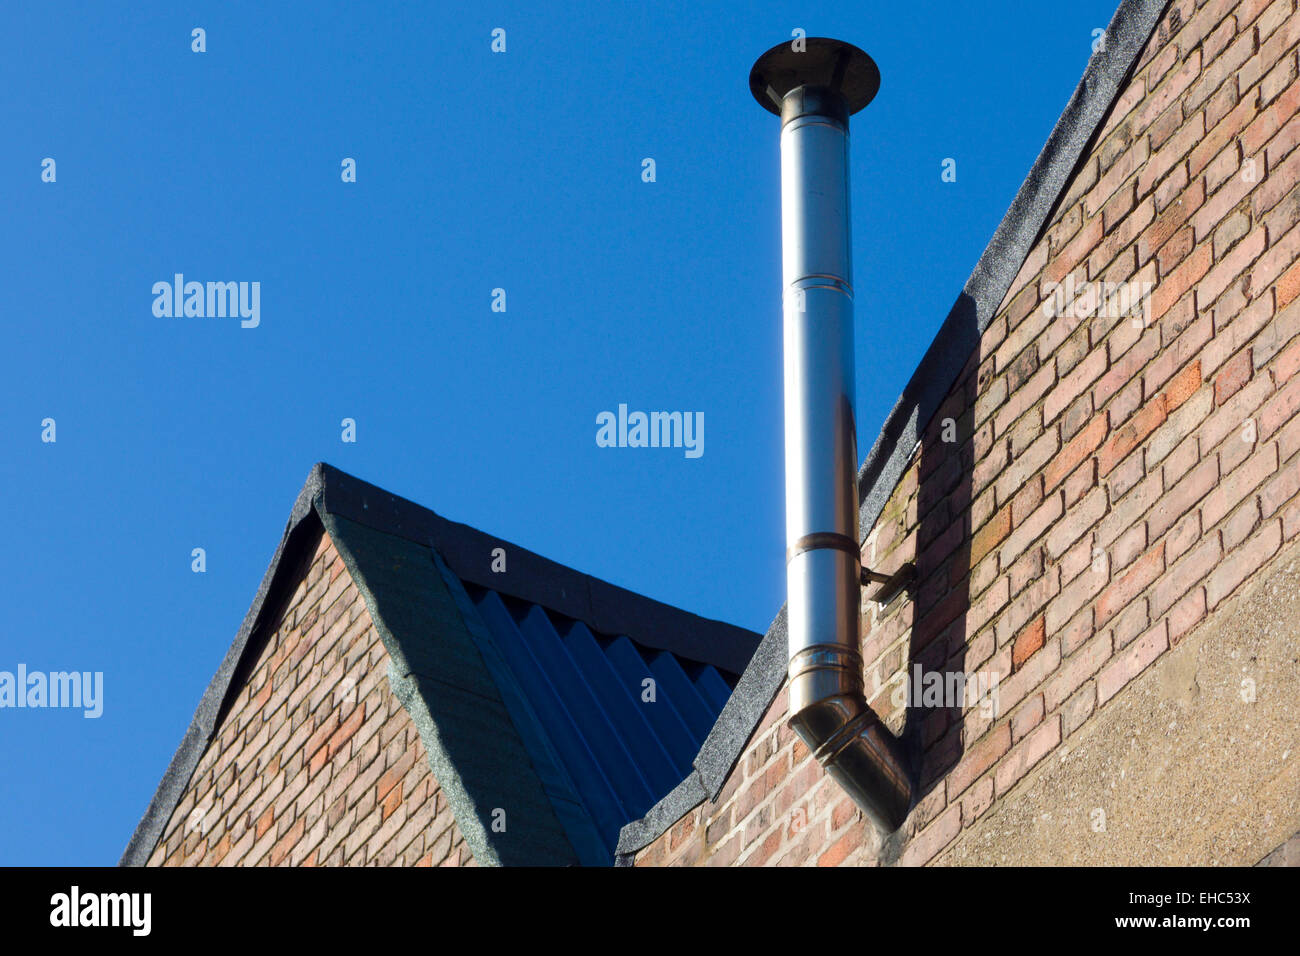 Stainless Steel Industrial Chimney on a Factory Wall, UK Stock Photo